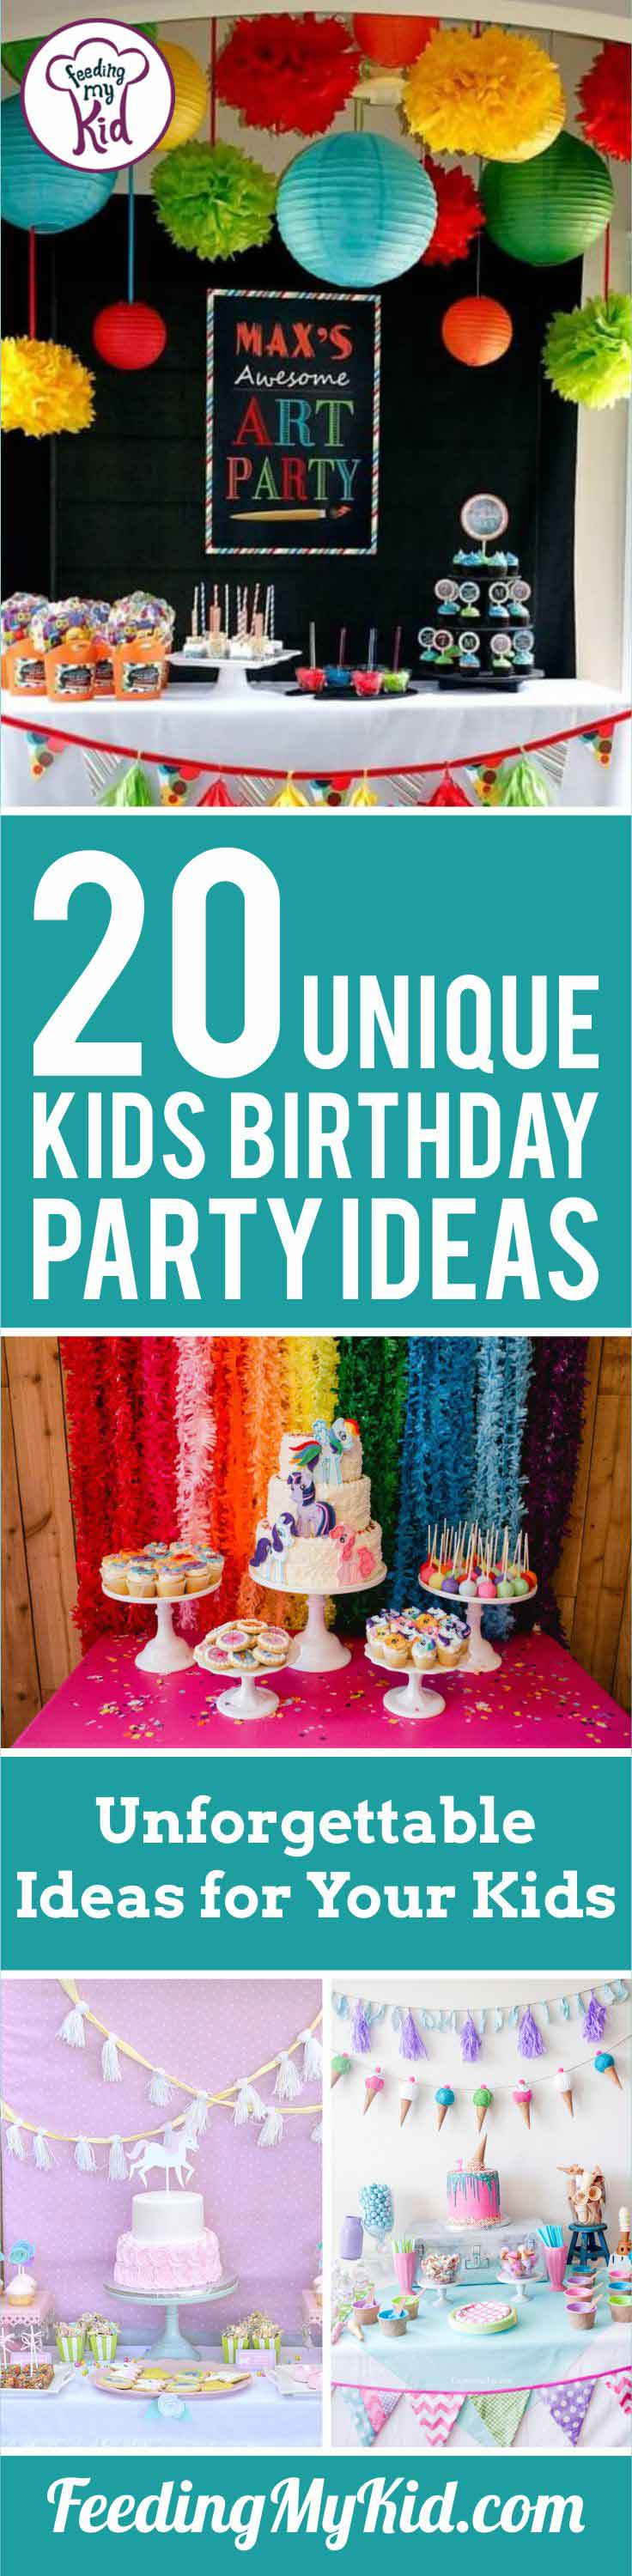 These kids birthday party ideas are perfect for the DIY lovers out there! Create birthday memories your kids will never forget.